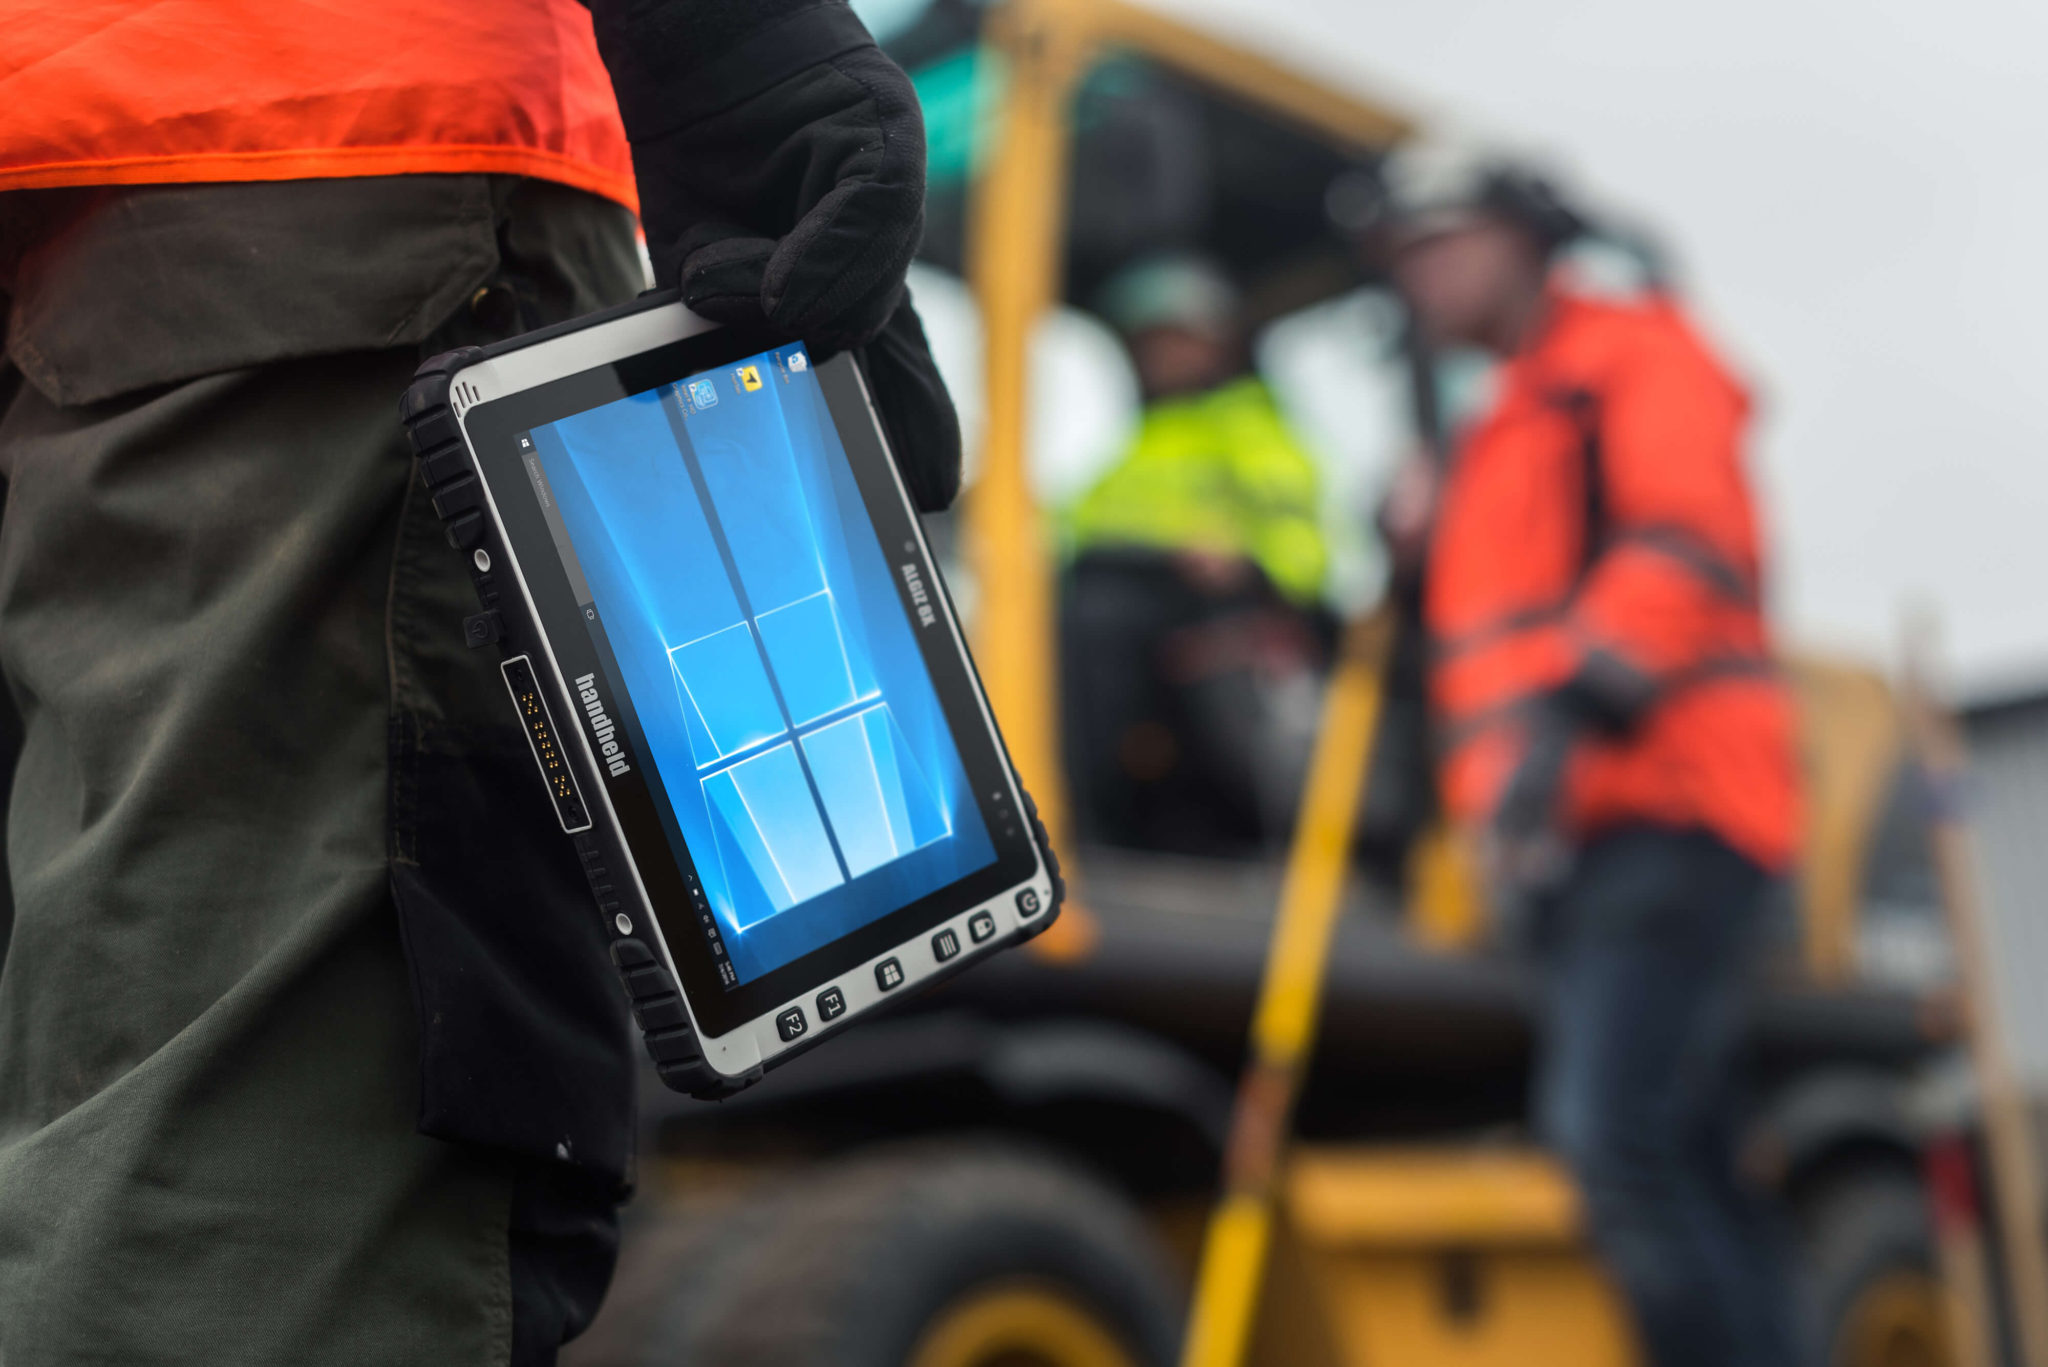 Handheld-Algiz-8X-rugged-MIL-STD-tablet(1)